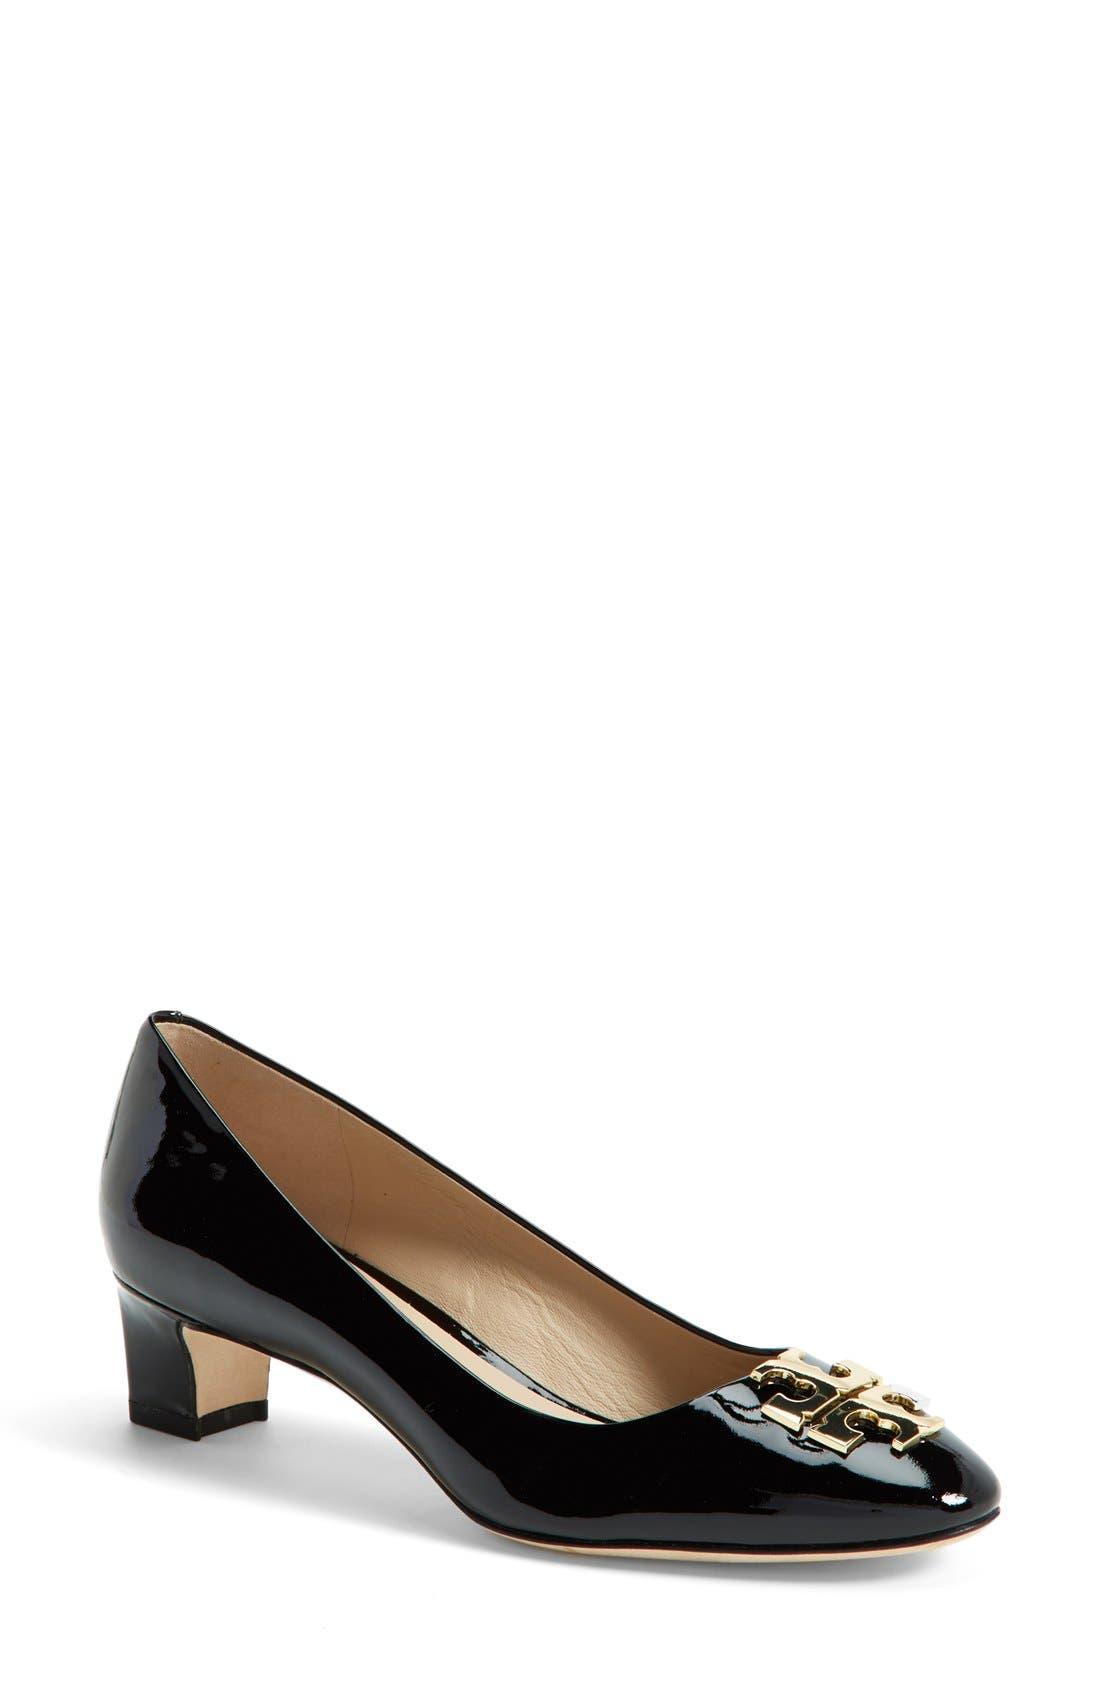 Main Image - Tory Burch 'Raleigh' Patent Leather Pump (Women)